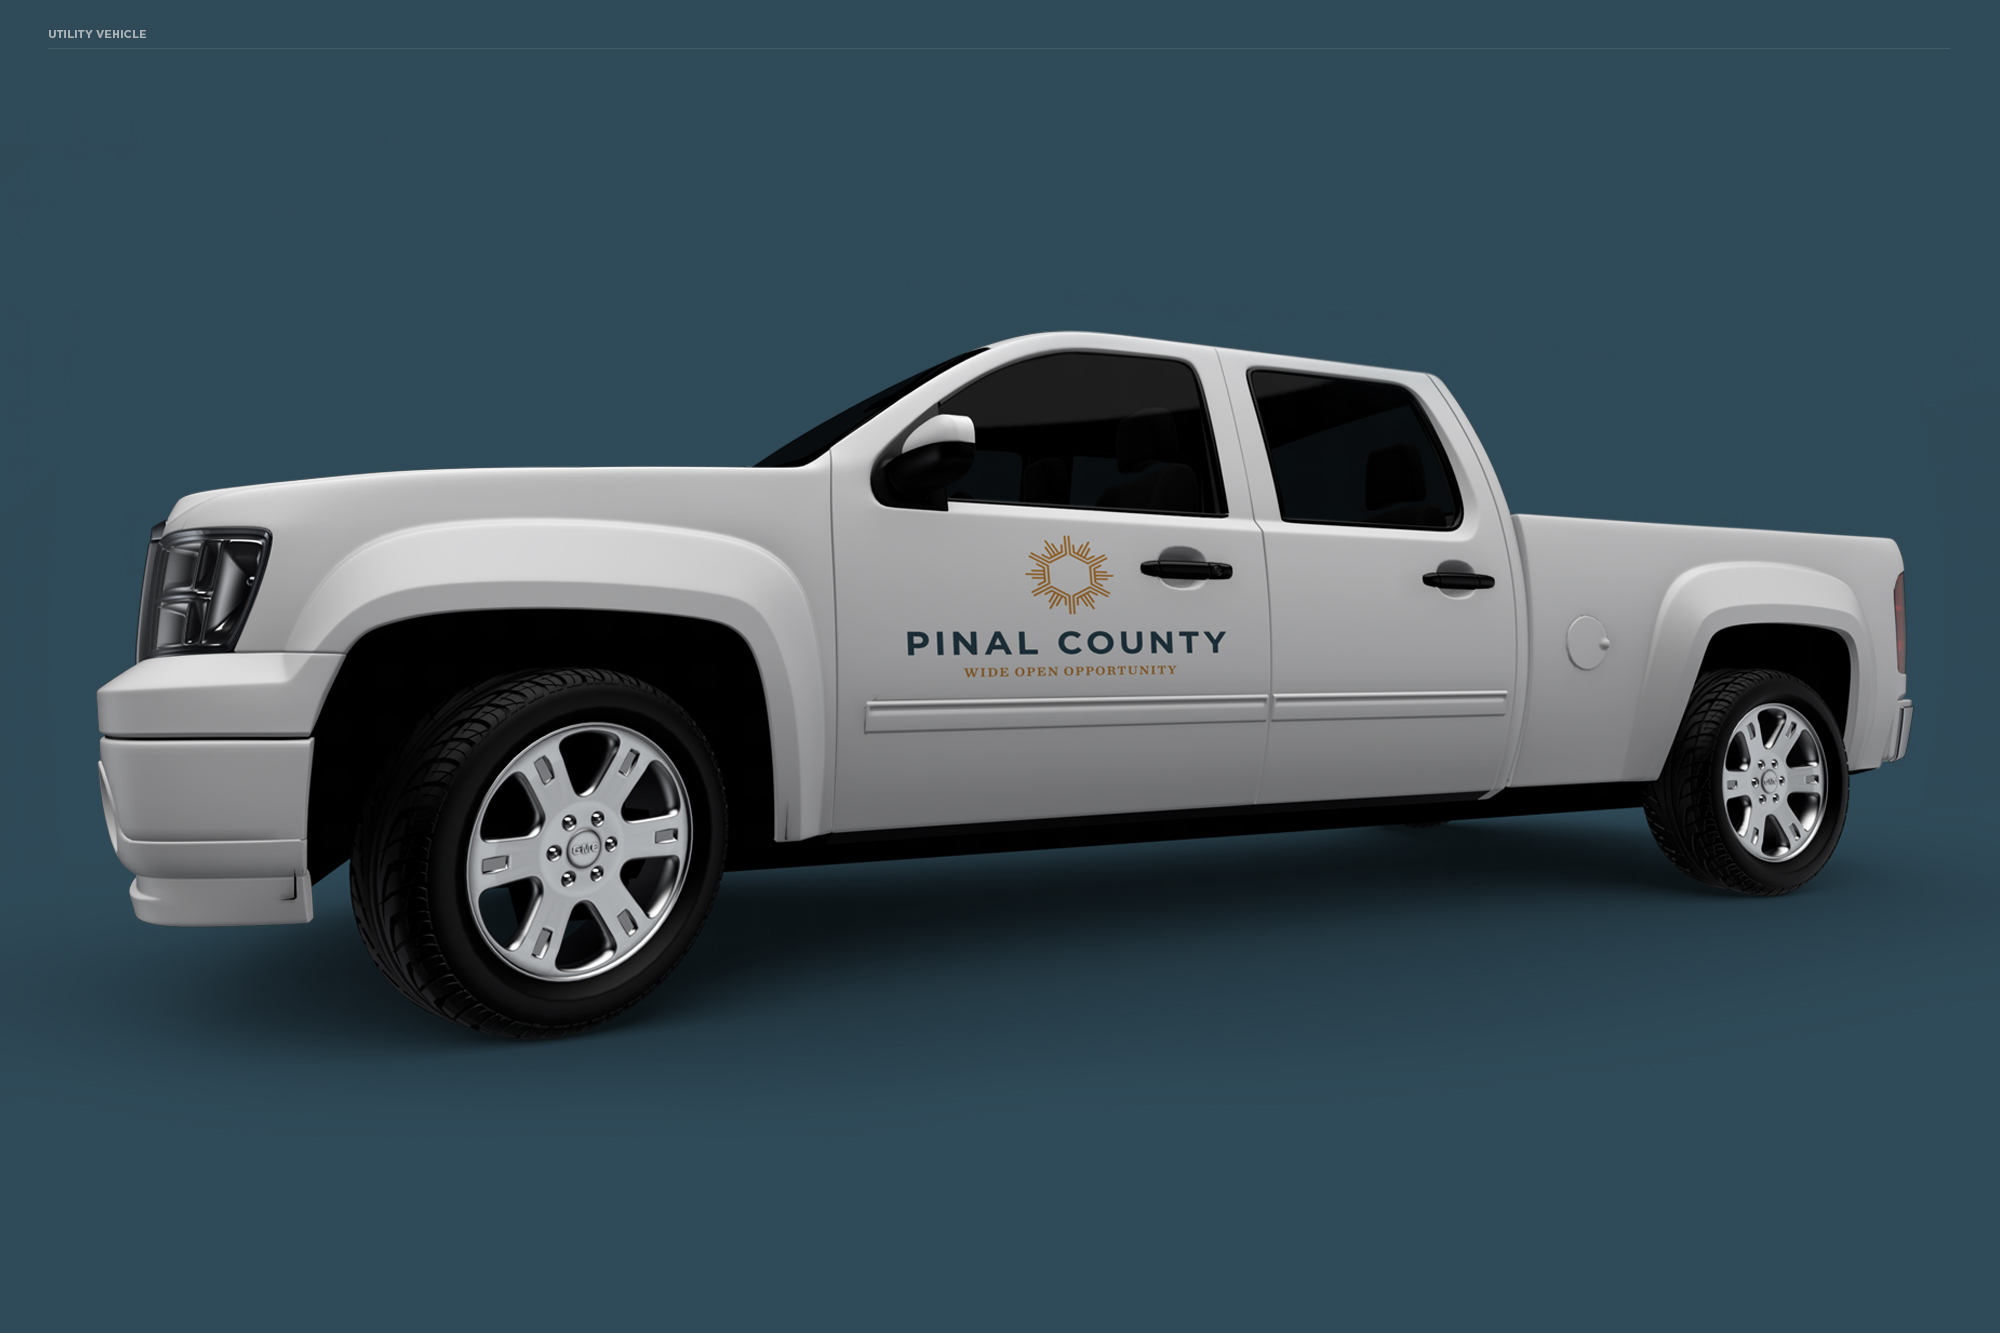 Pinal County utility truck